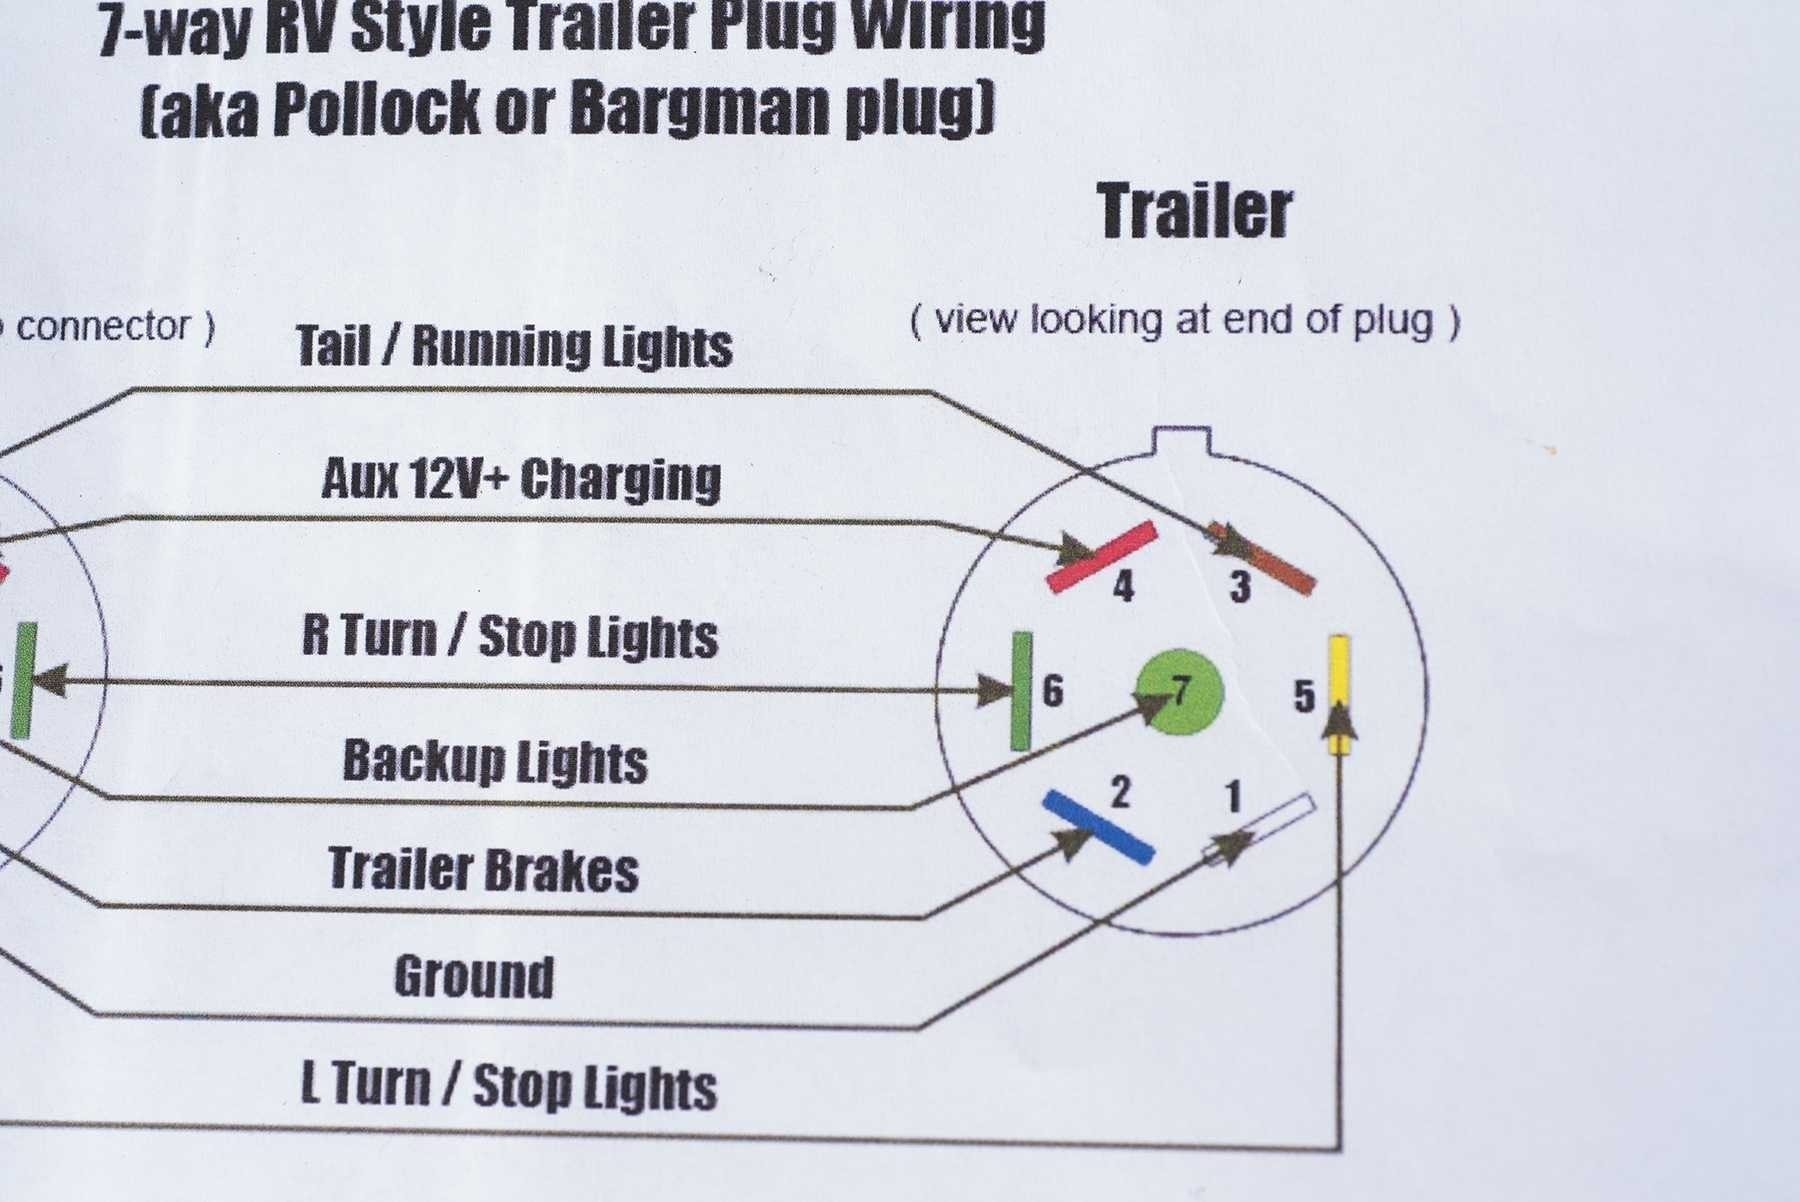 wiring diagram for dodge ram trailer lights dodge trailer wiring diagram 7 pin | free wiring diagram